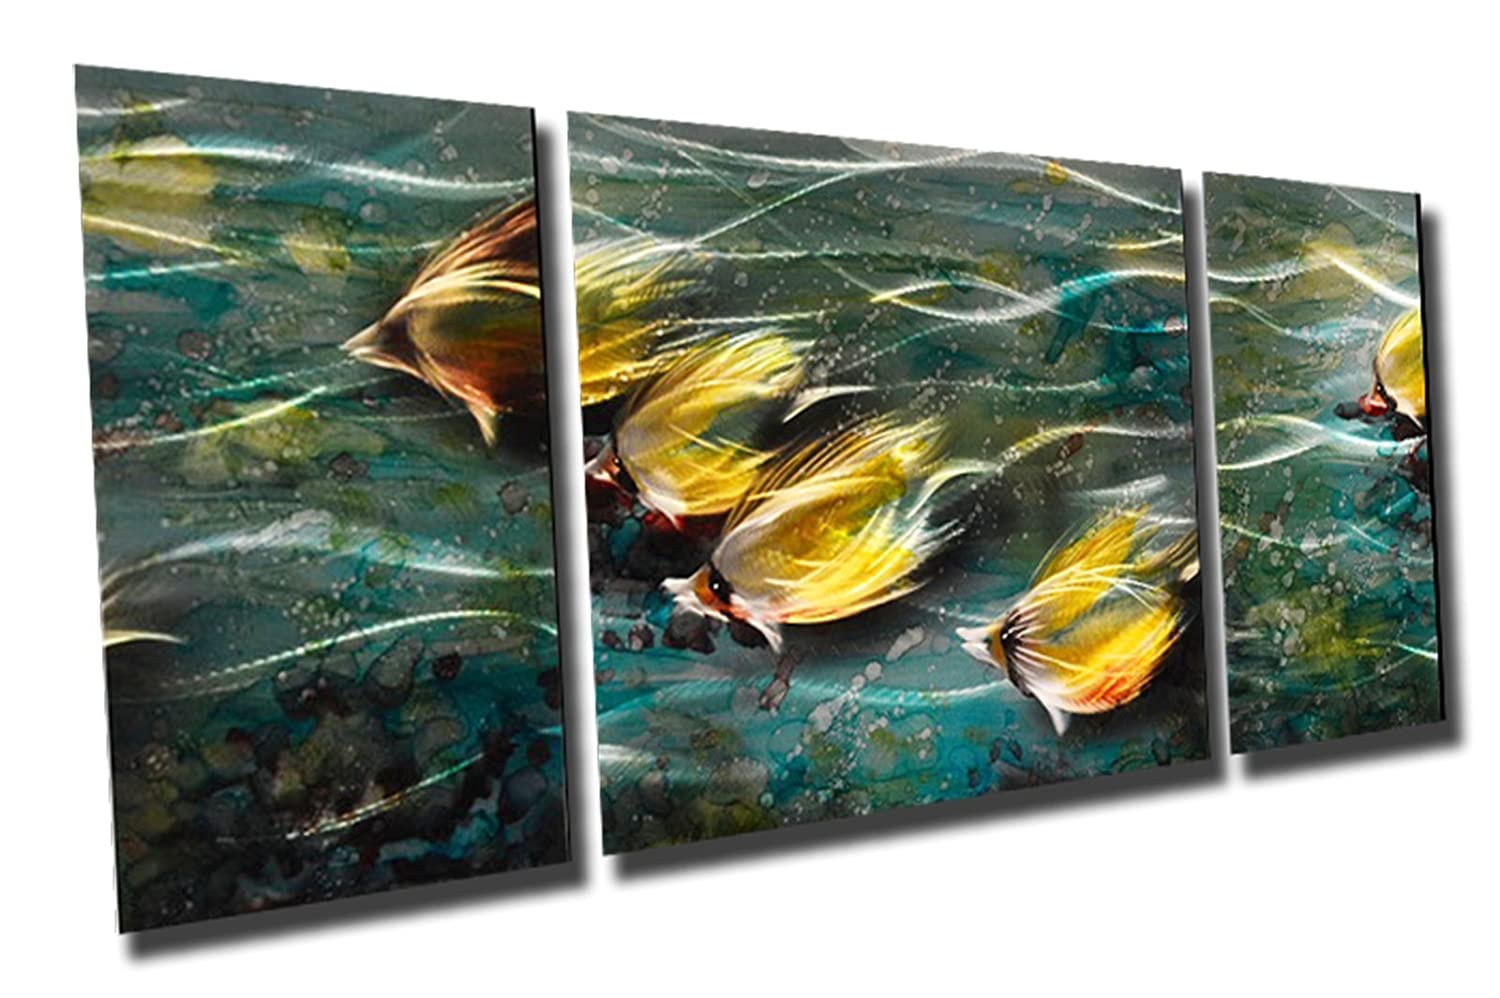 Tropical Yellow Fish Metal Wall Art 50X24 Abstract Modern Contemporary Home Wall  Decor Painting-Decorative Modern Set of 3 Panels-CHB6012032 : Amazon.in:  Home & Kitchen